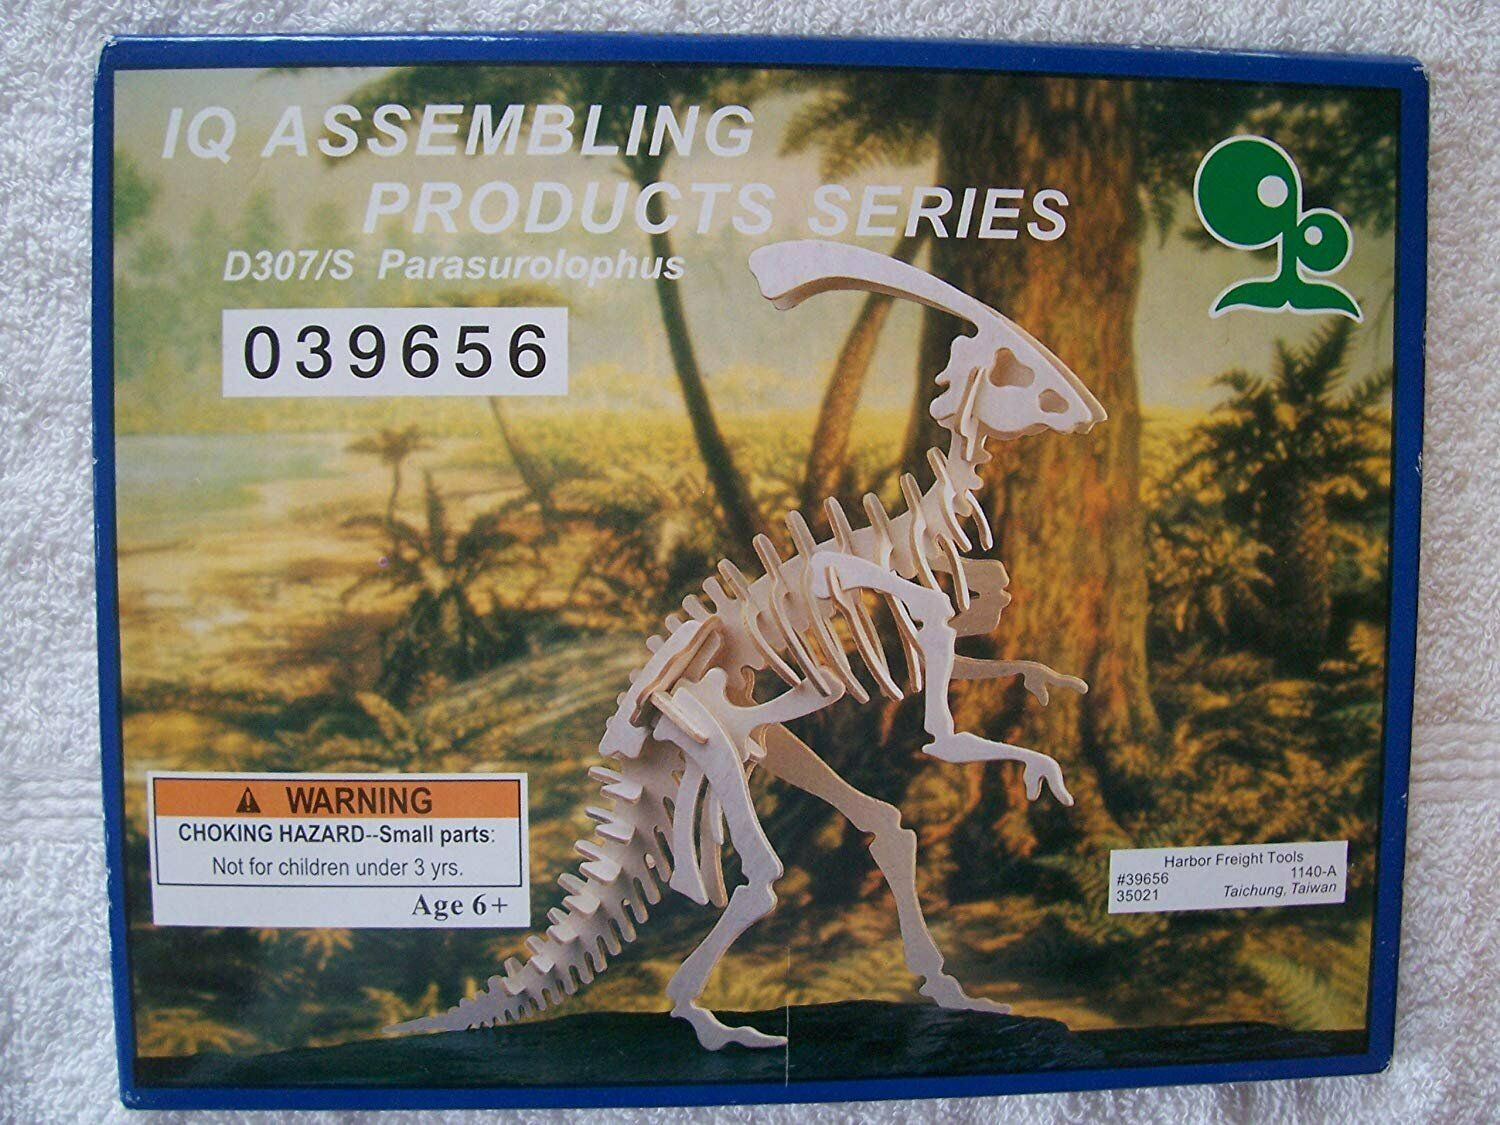 Primary image for IQ Assembling Products Series Wooden Model (Parasurolophus)